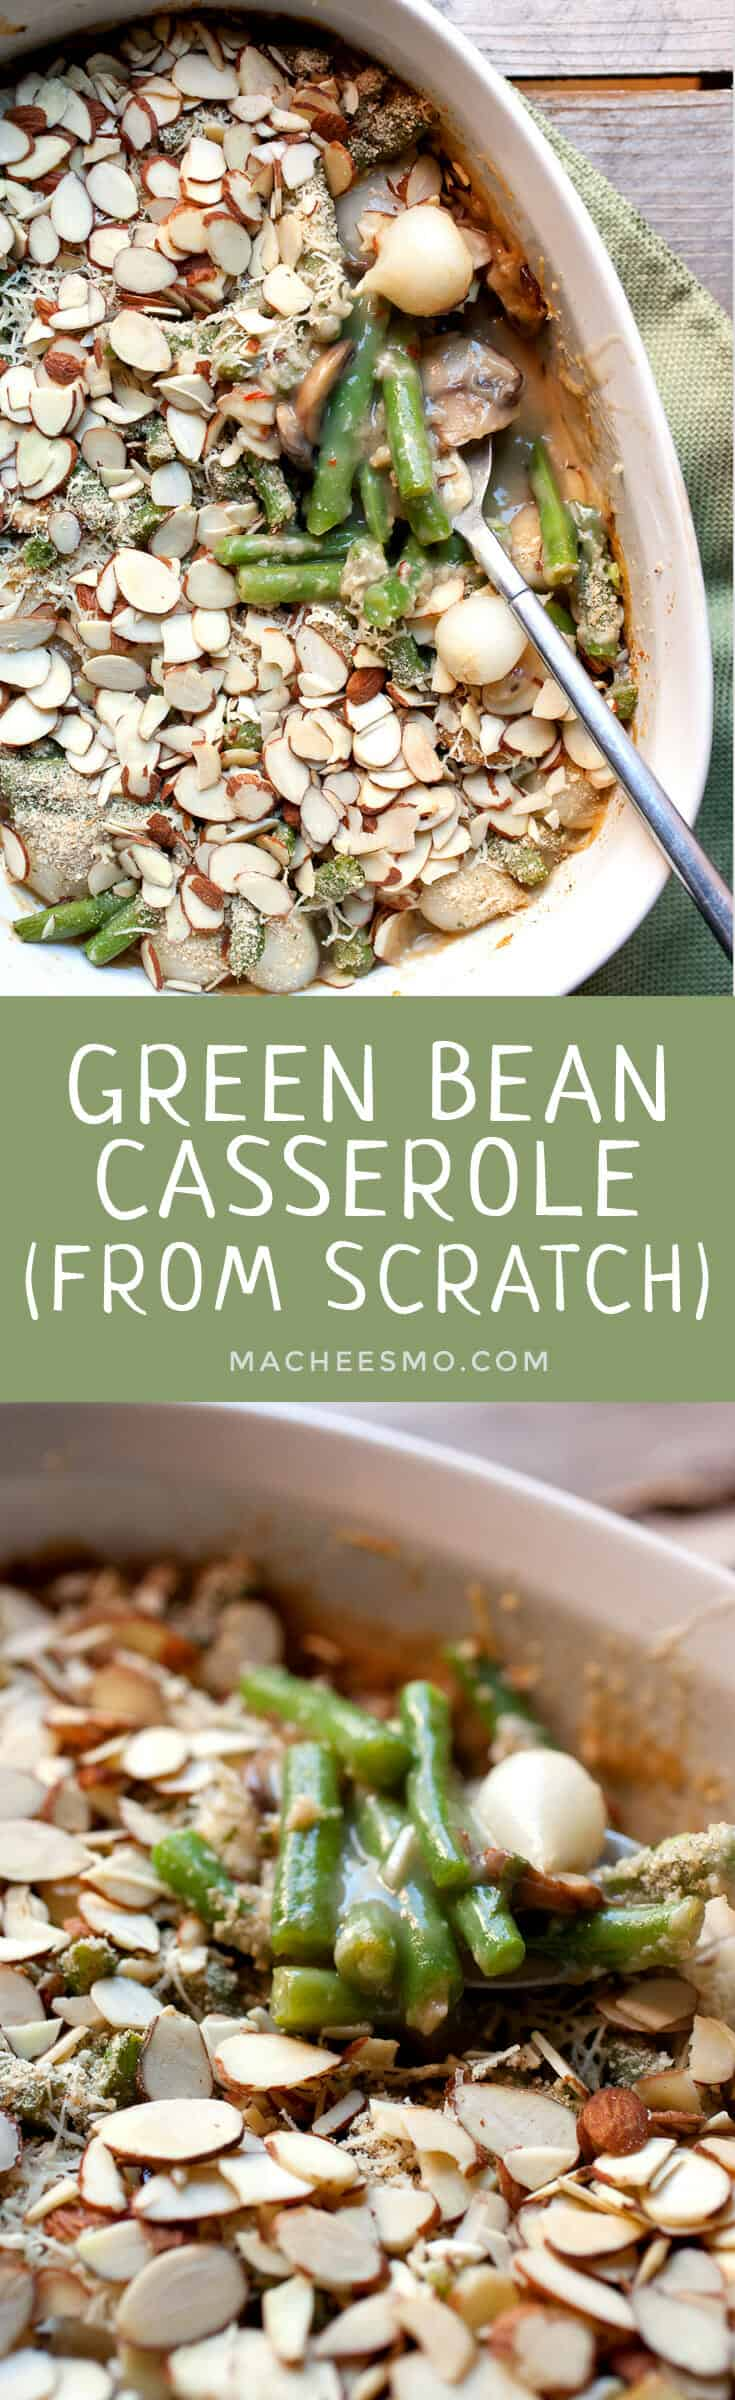 Green Bean Casserole from Scratch: Ditch the soup cans and make a green bean casserole with fresh ingredients! It's easier than you might think and the extra work is very much worth it! | macheesmo.com